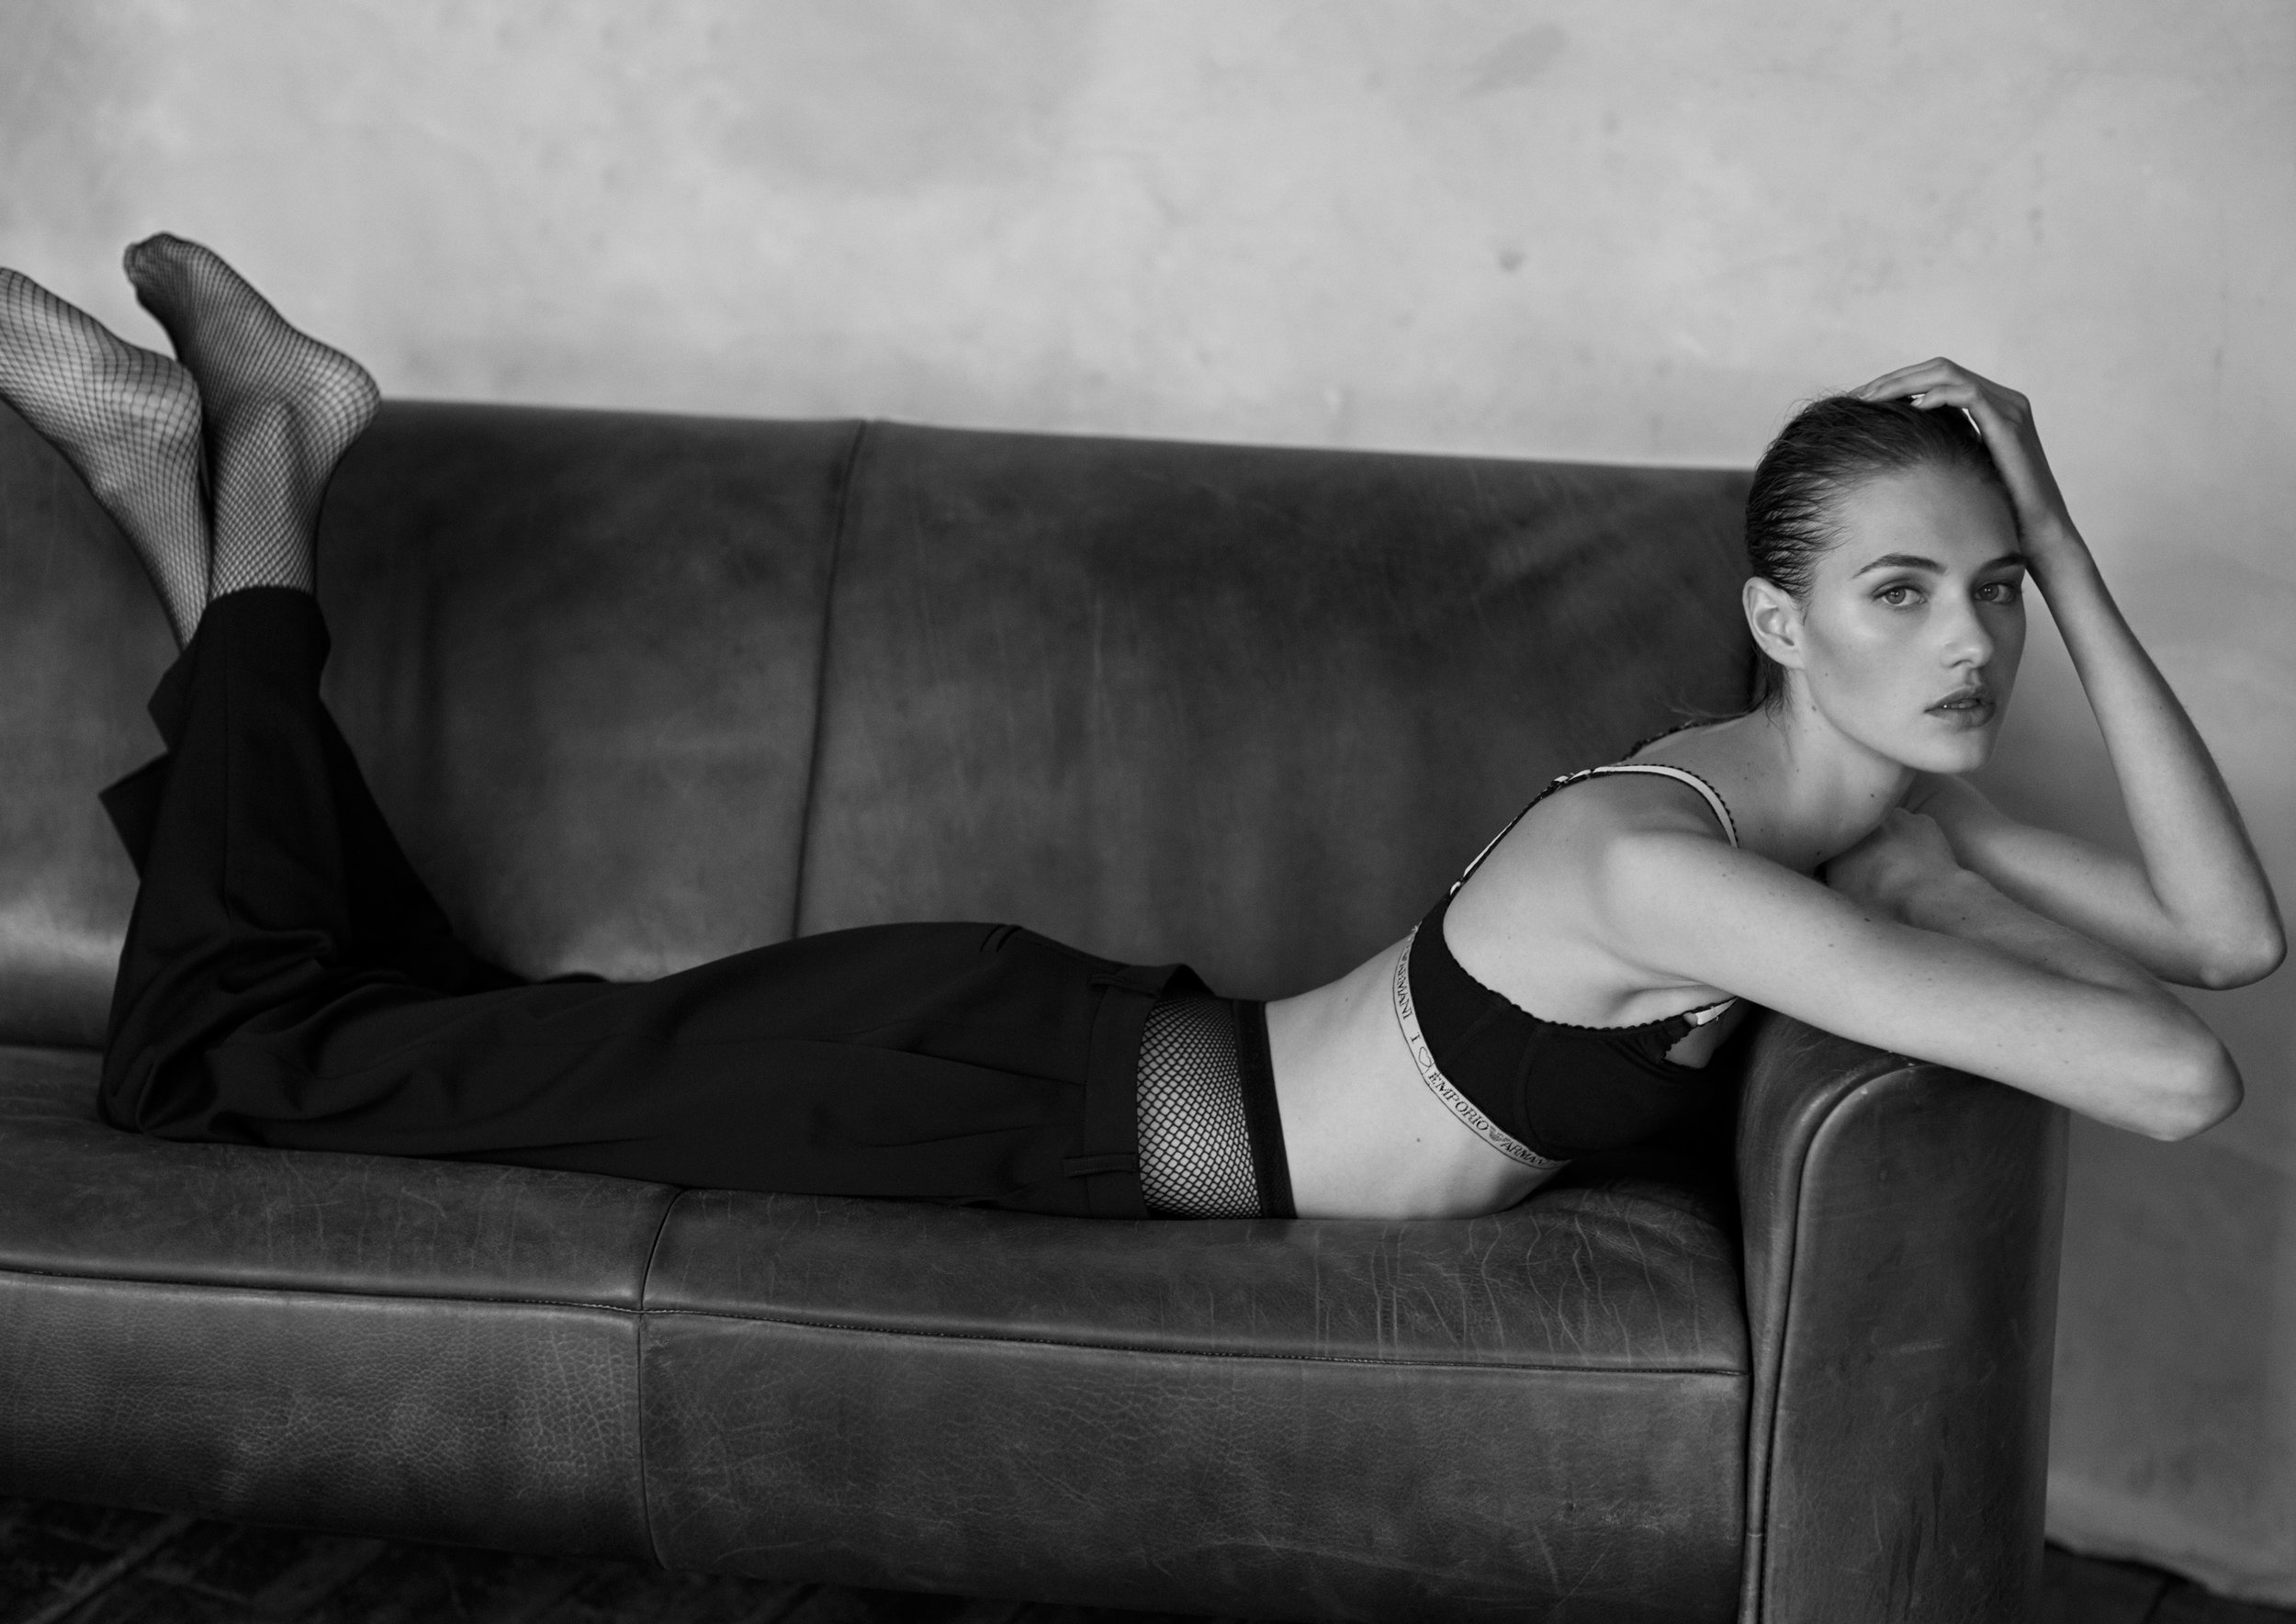 Sanne Vloet by Sam Hendel for Russh Magazine